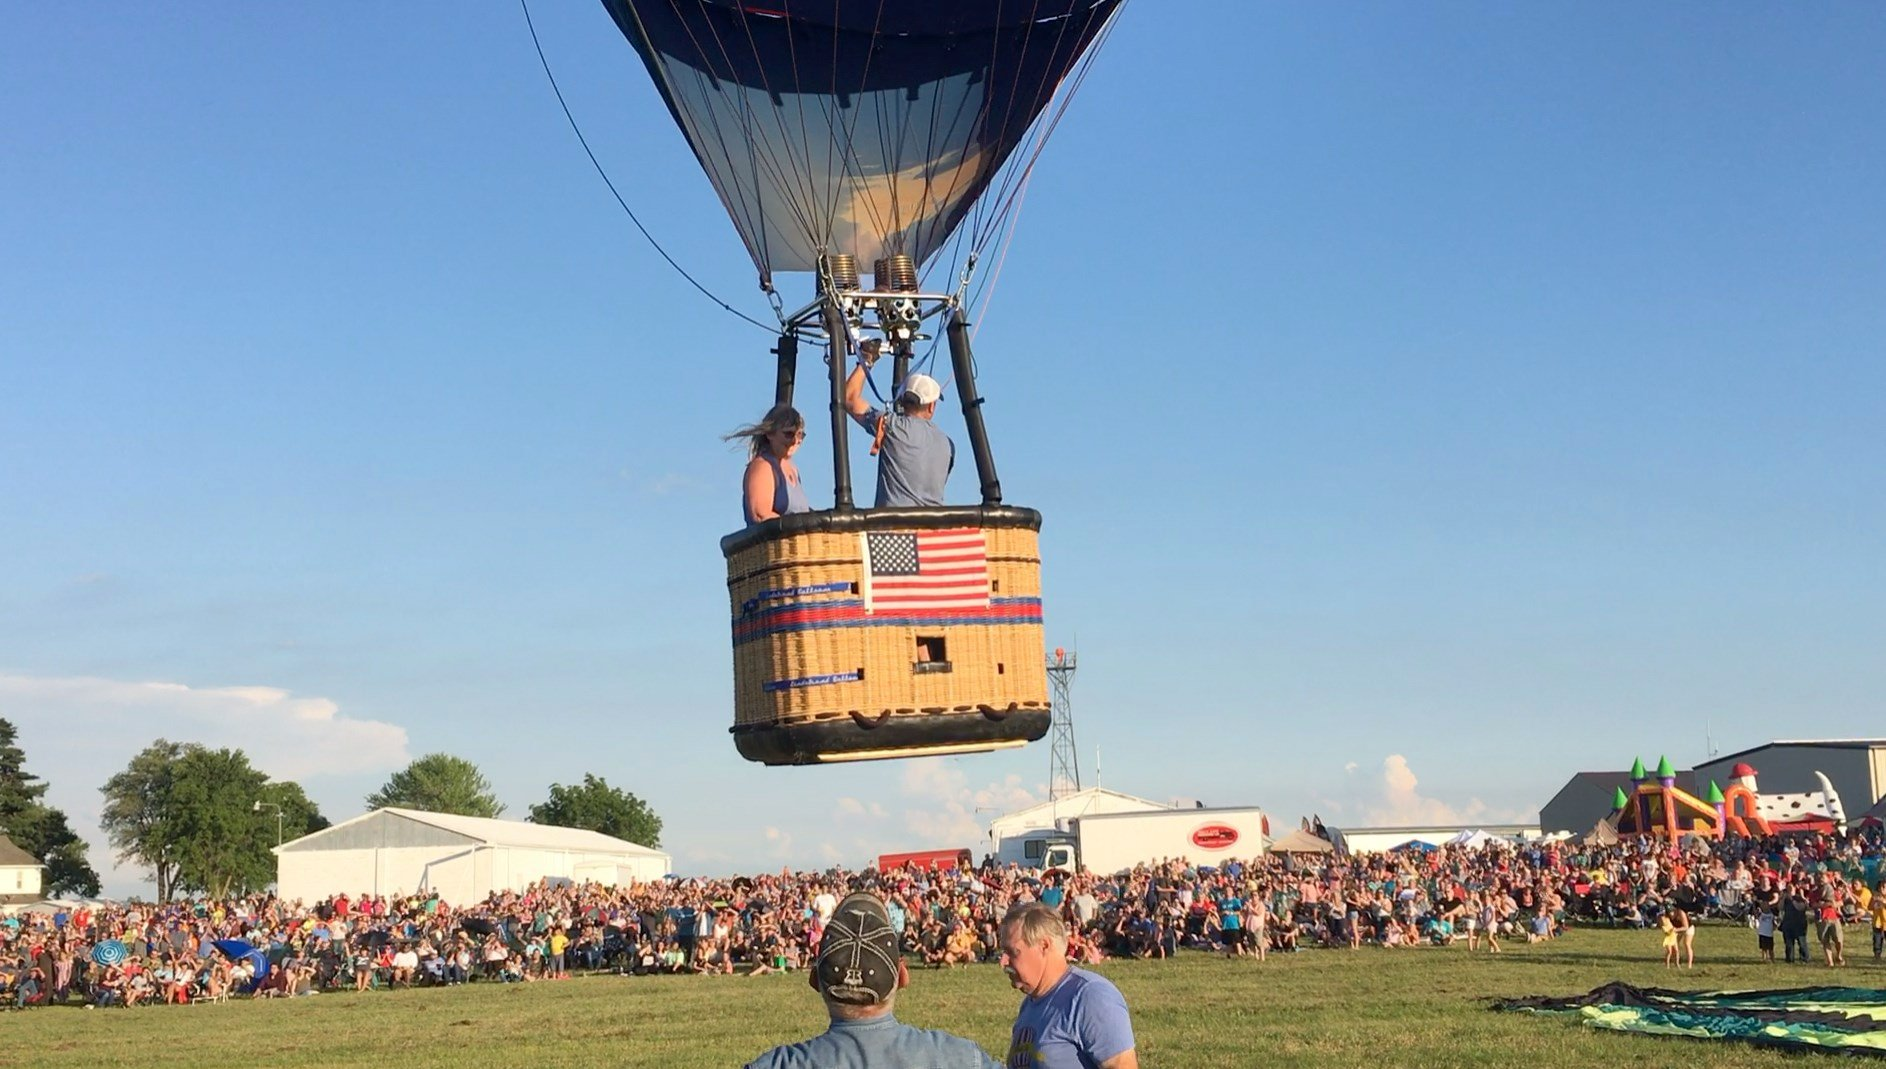 National Hot Air Balloon Championships set for Scotts Bluff County